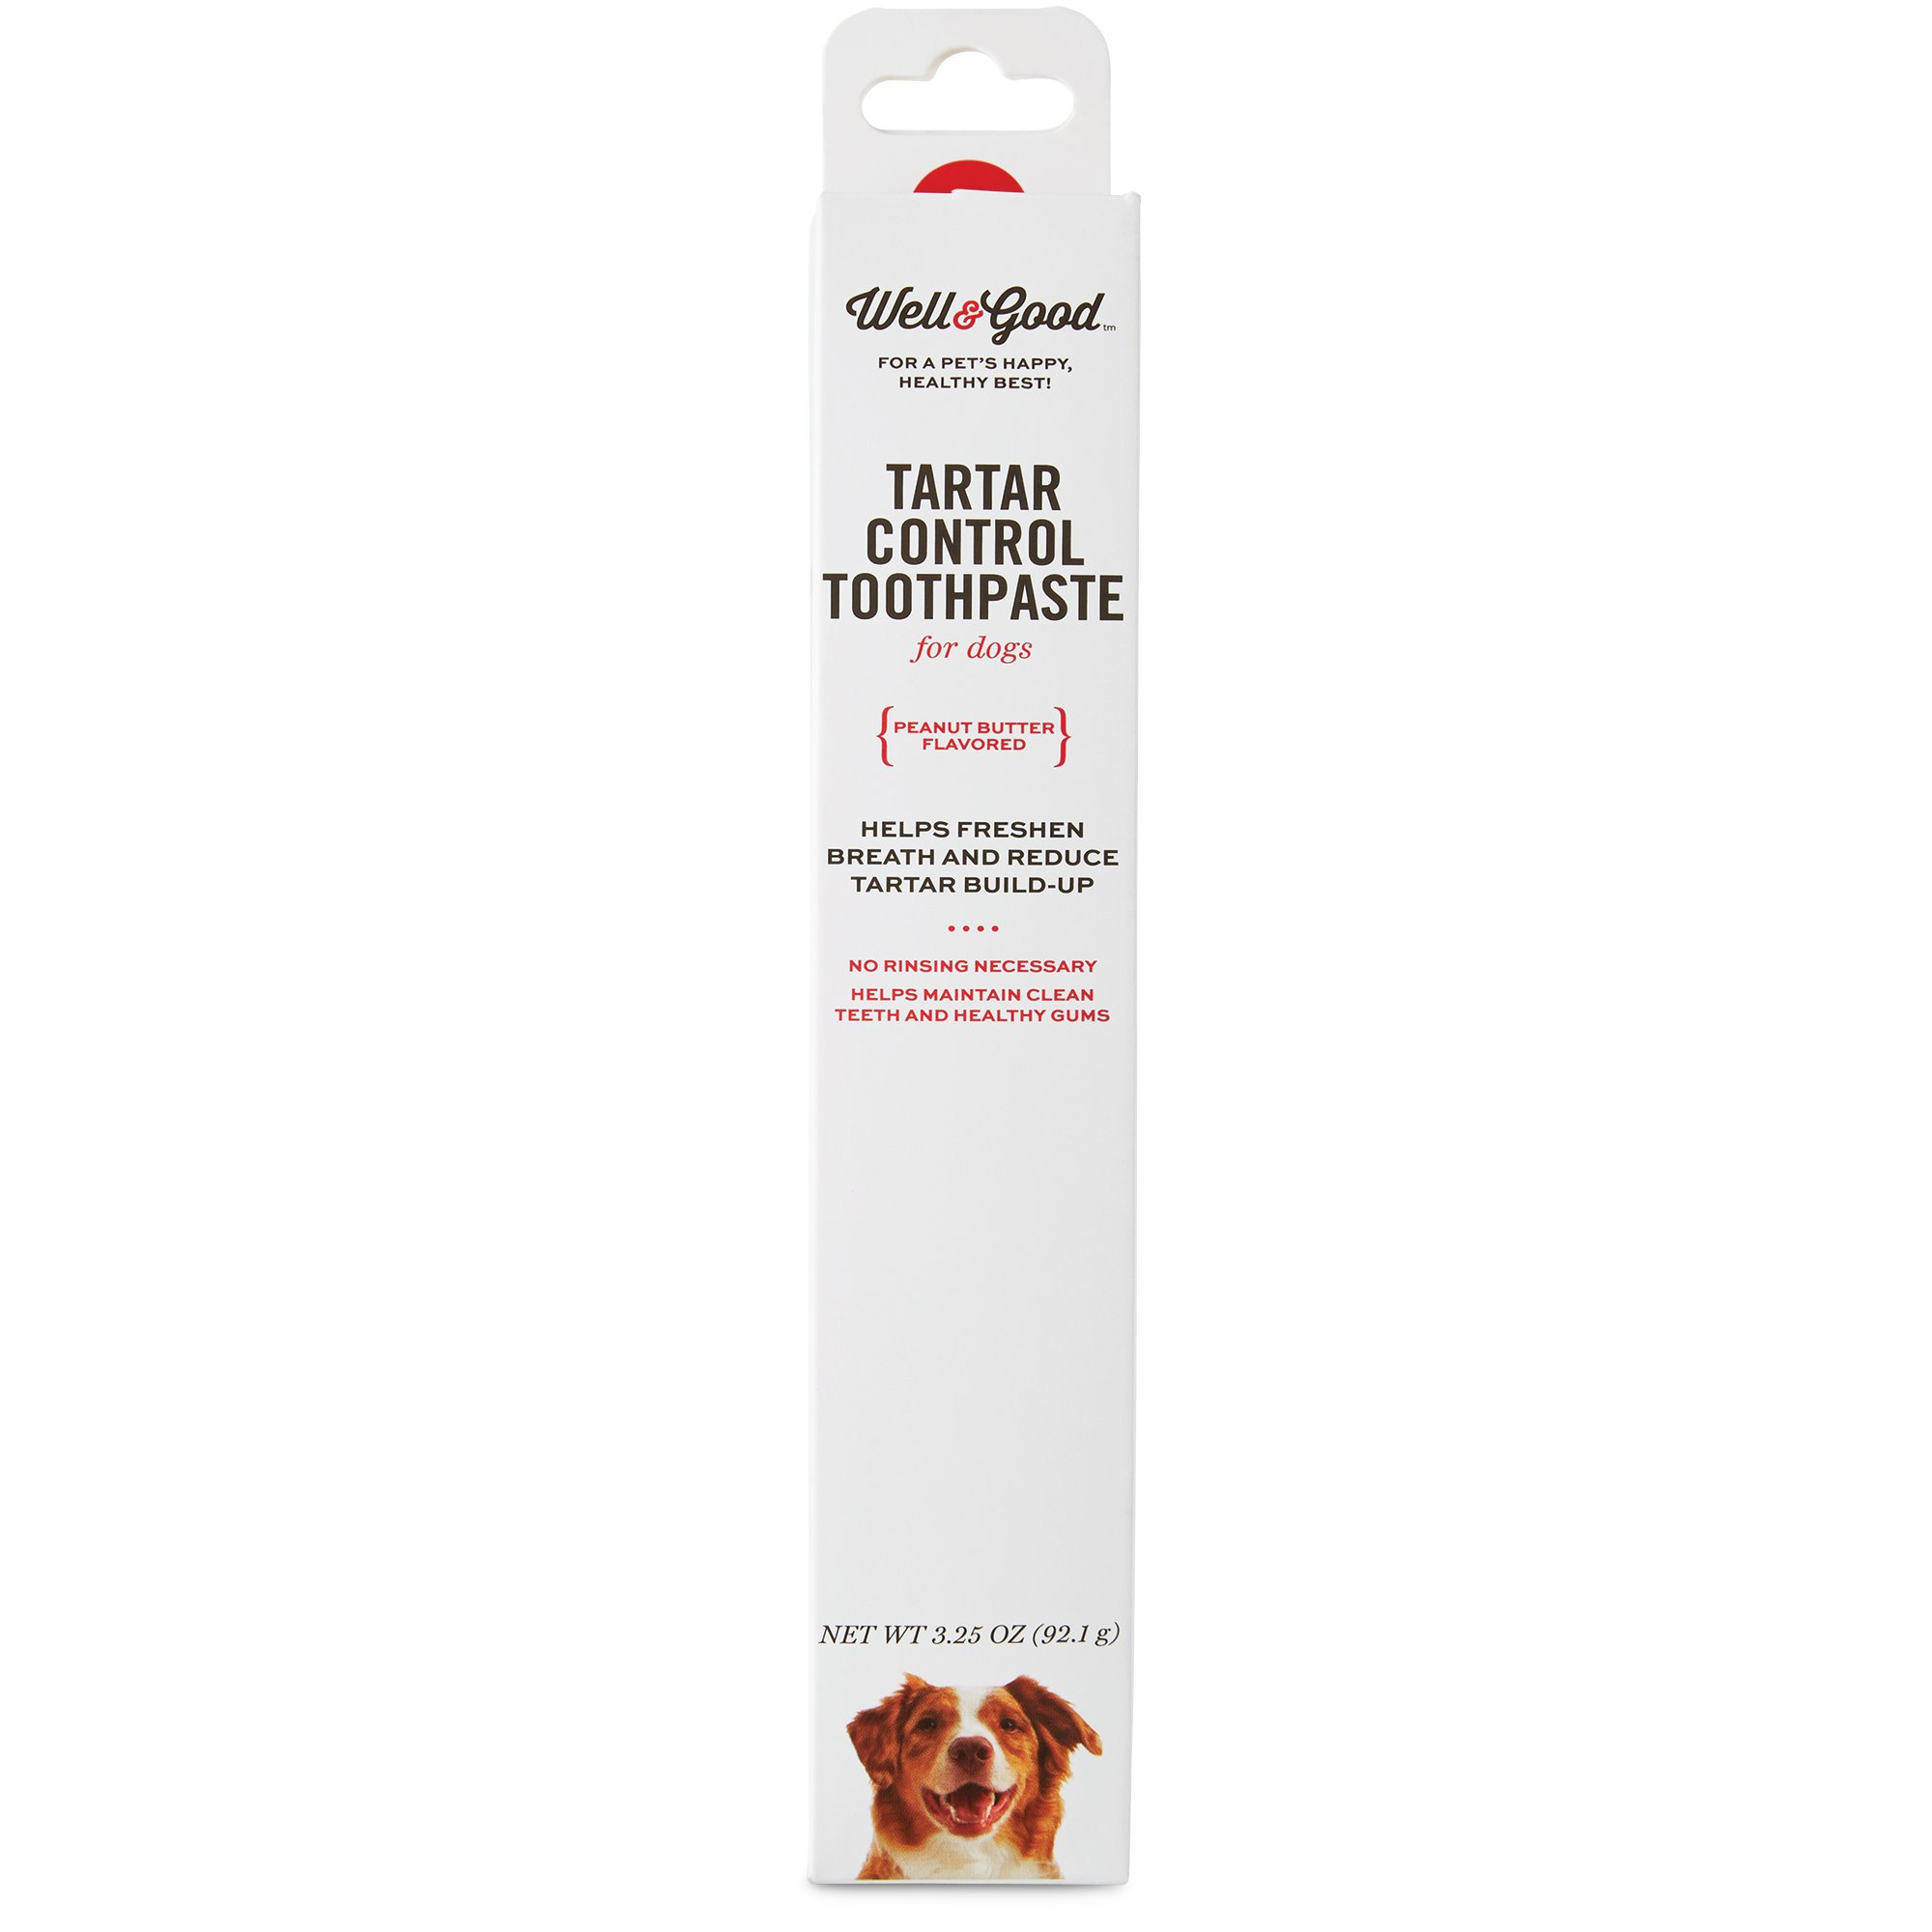 Tartar Control Food For Dogs